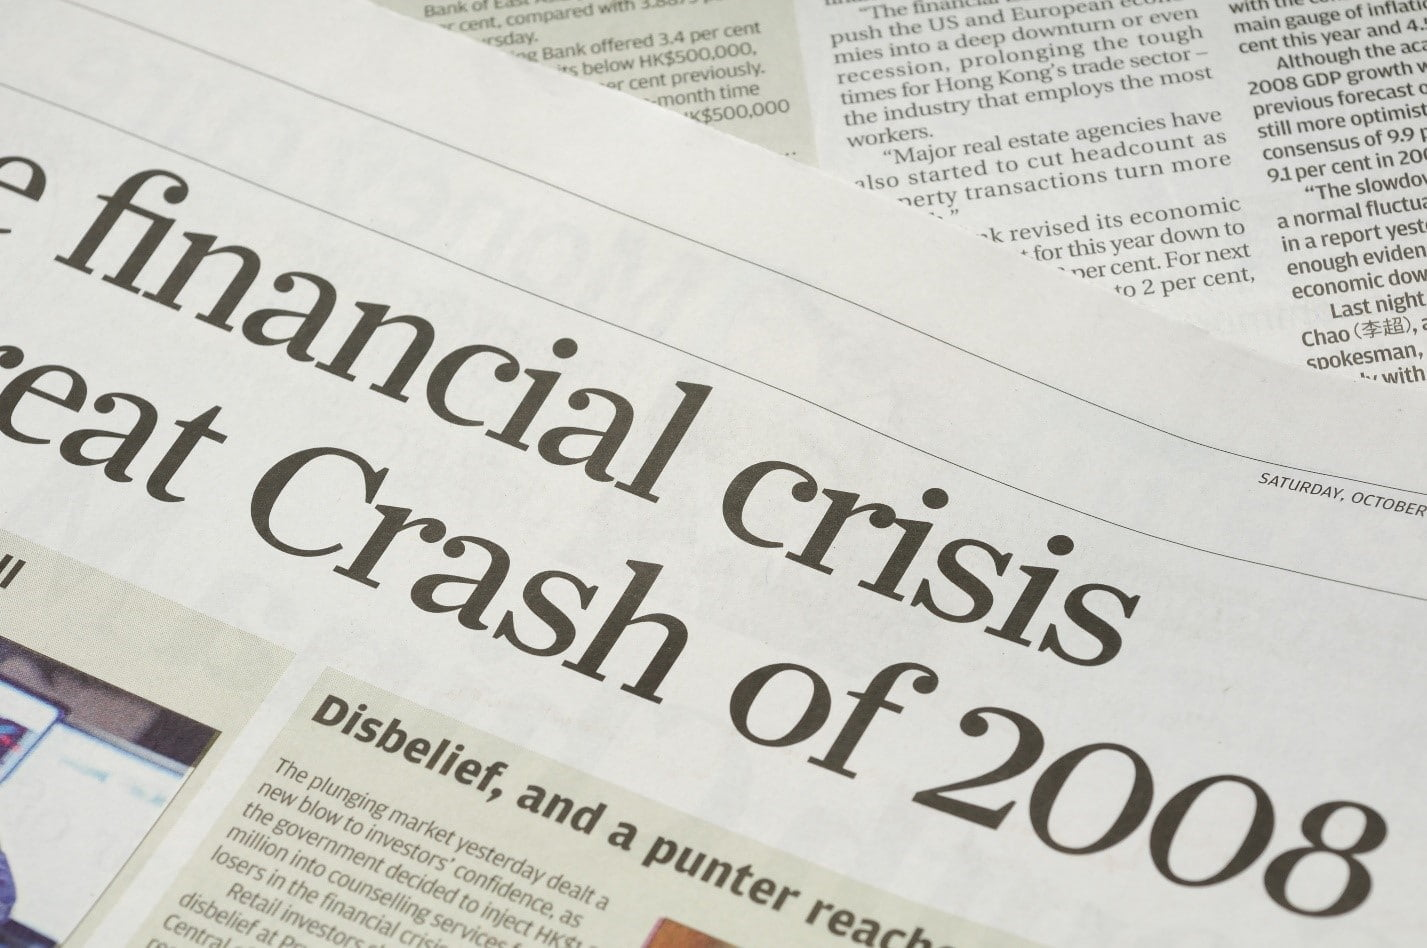 newspaper clip showing financial crisis of 2008 and home rental market